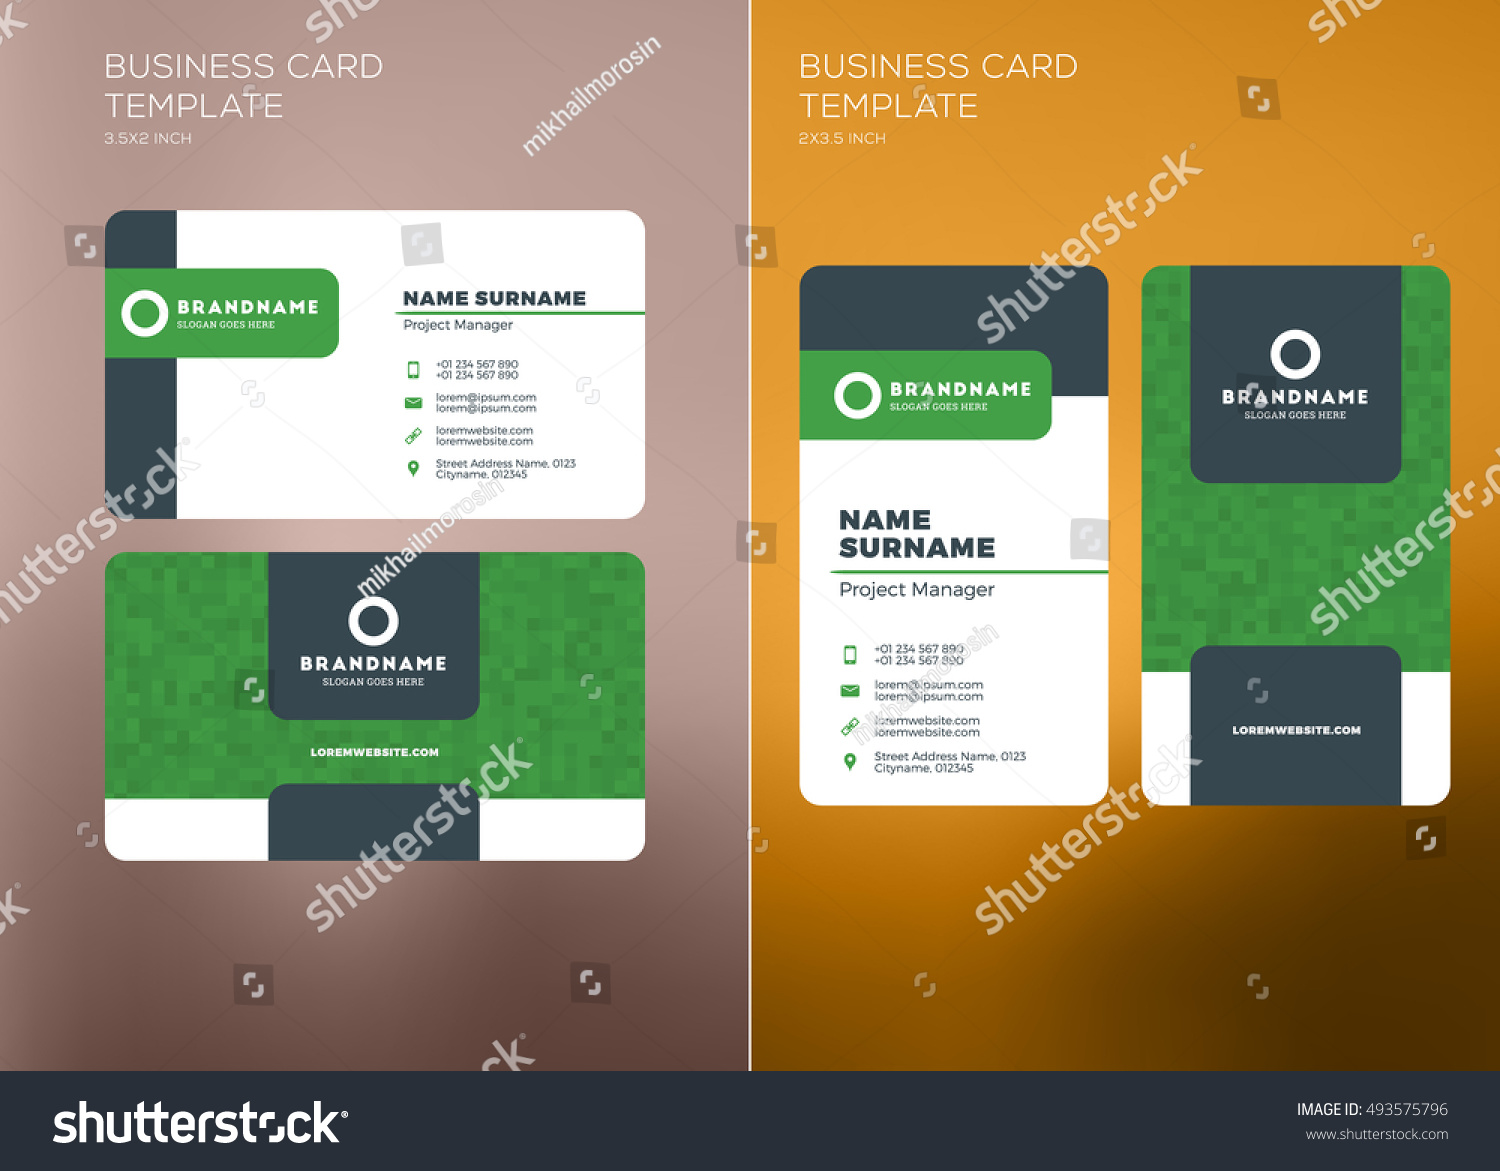 Corporate business card print template personal stock vector 2018 corporate business card print template personal visiting card with company logo vertical and horizontal cheaphphosting